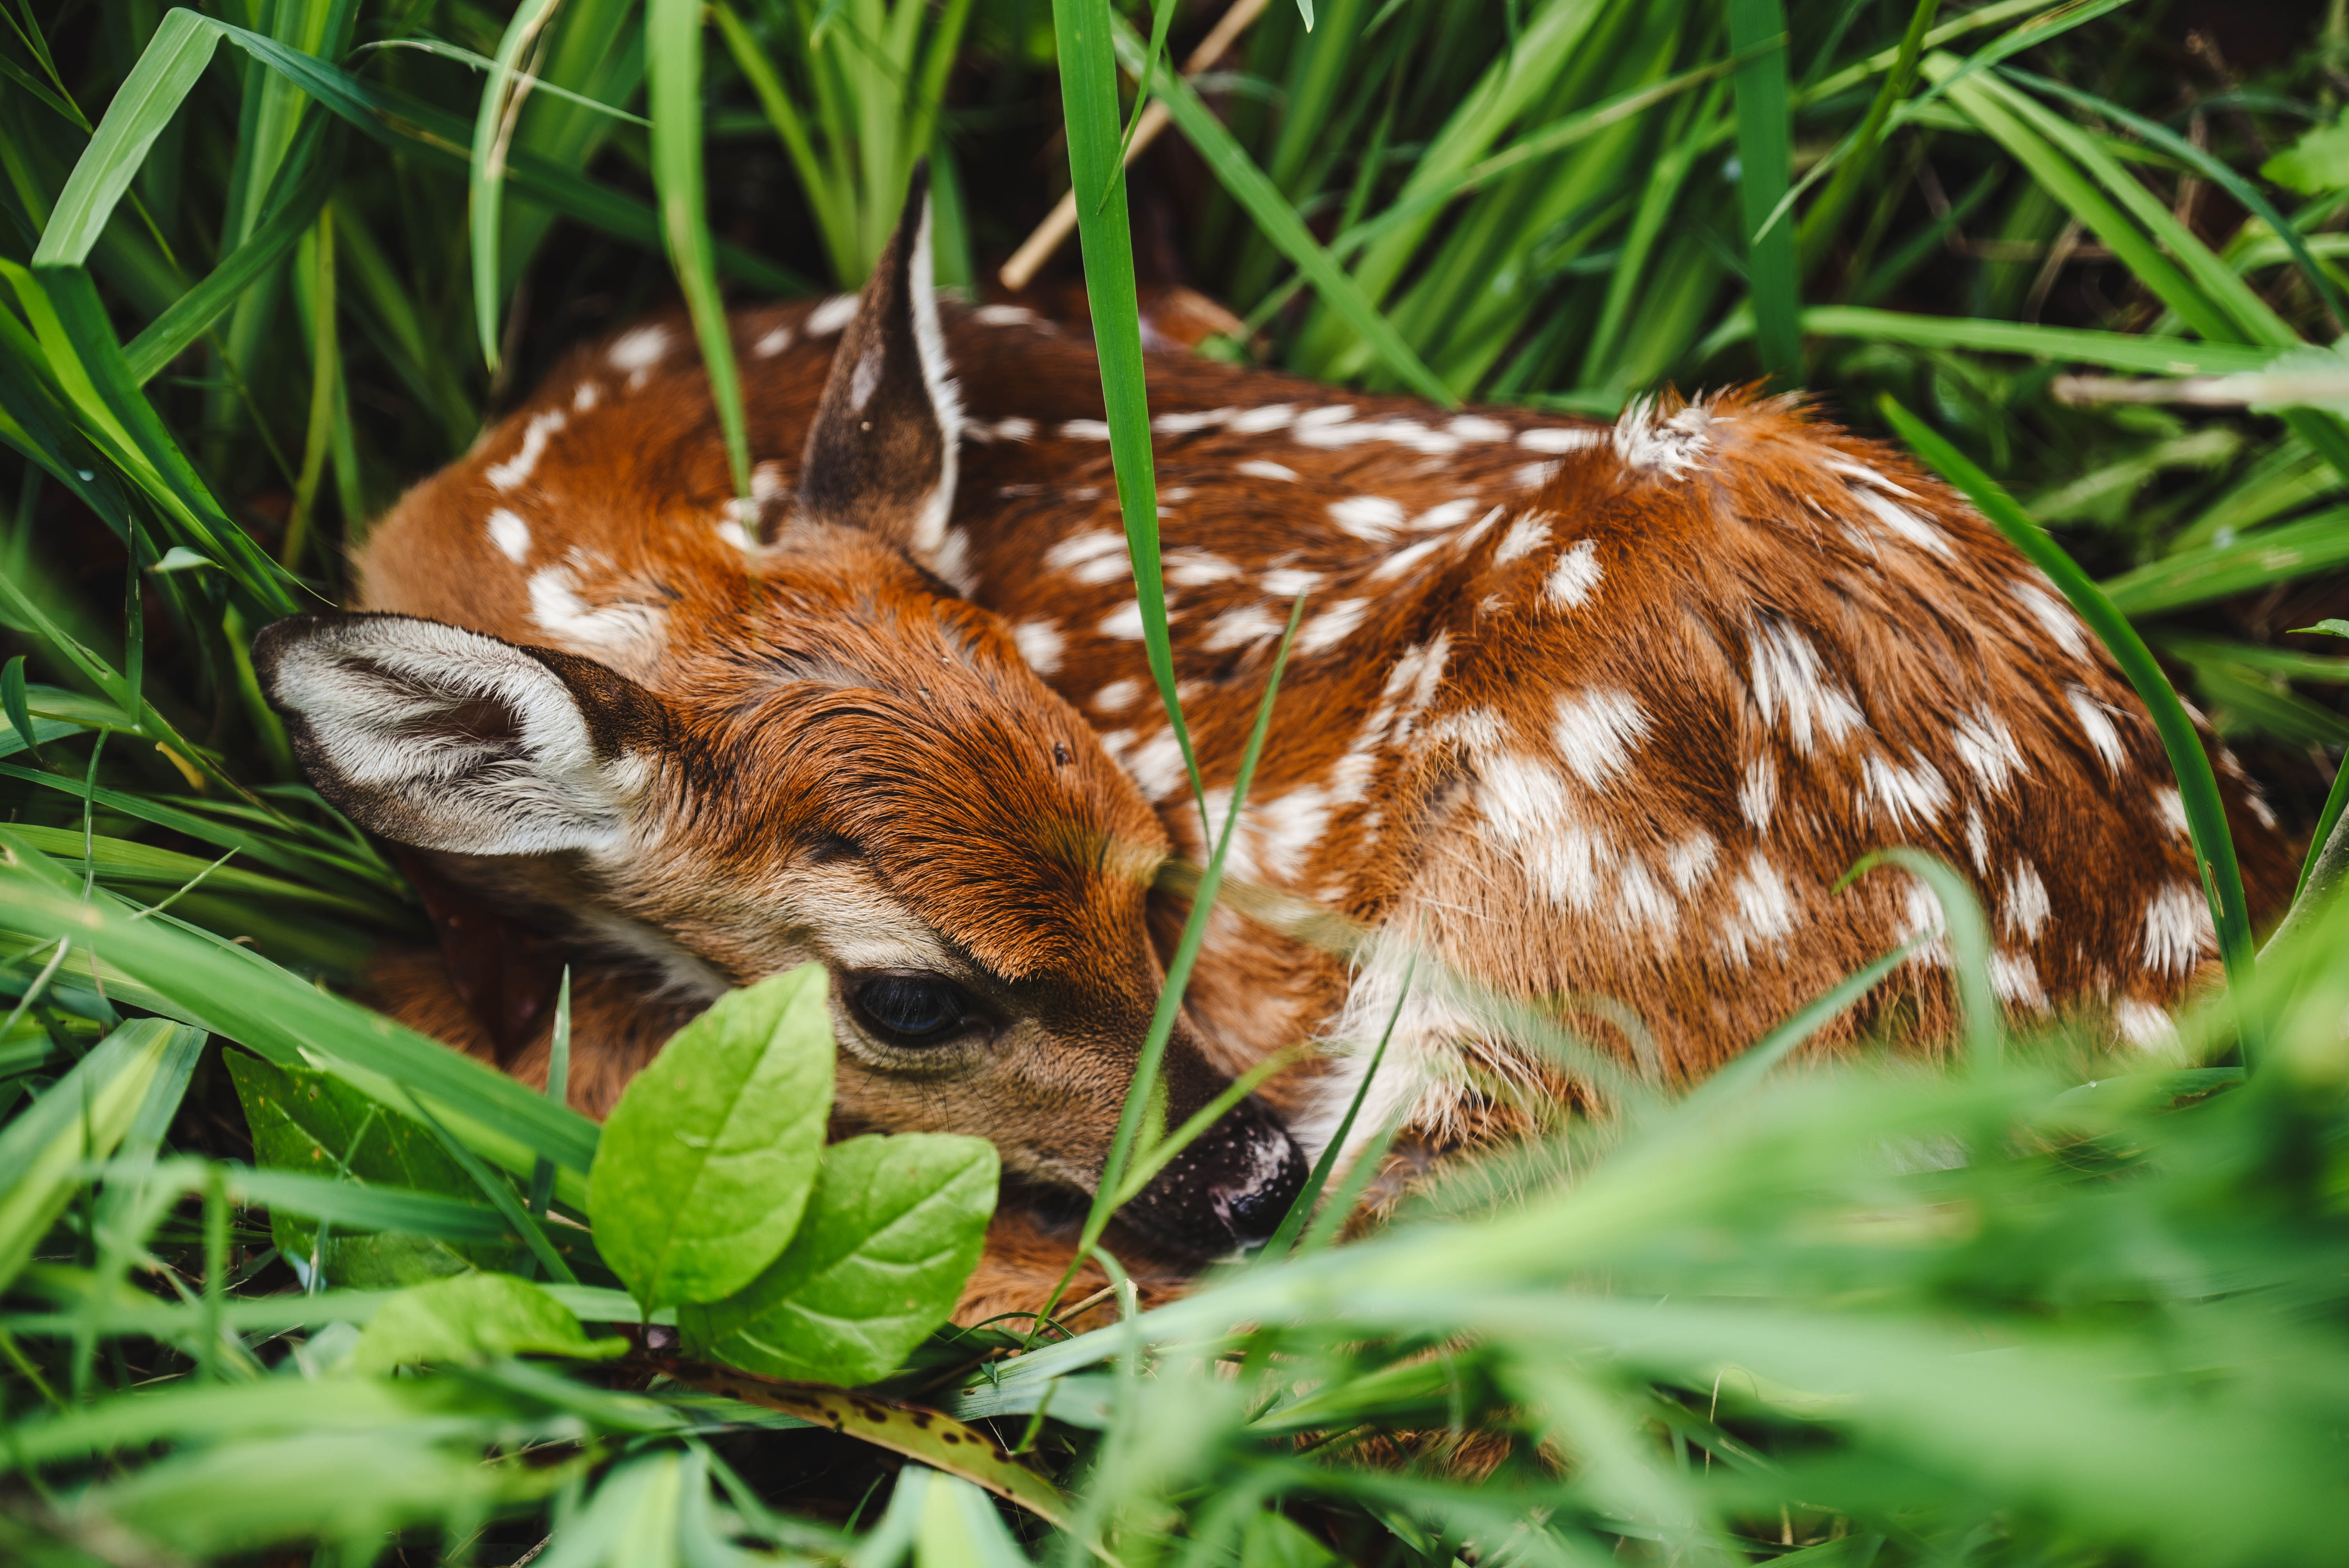 brown and white spotted deer on green grass during daytime